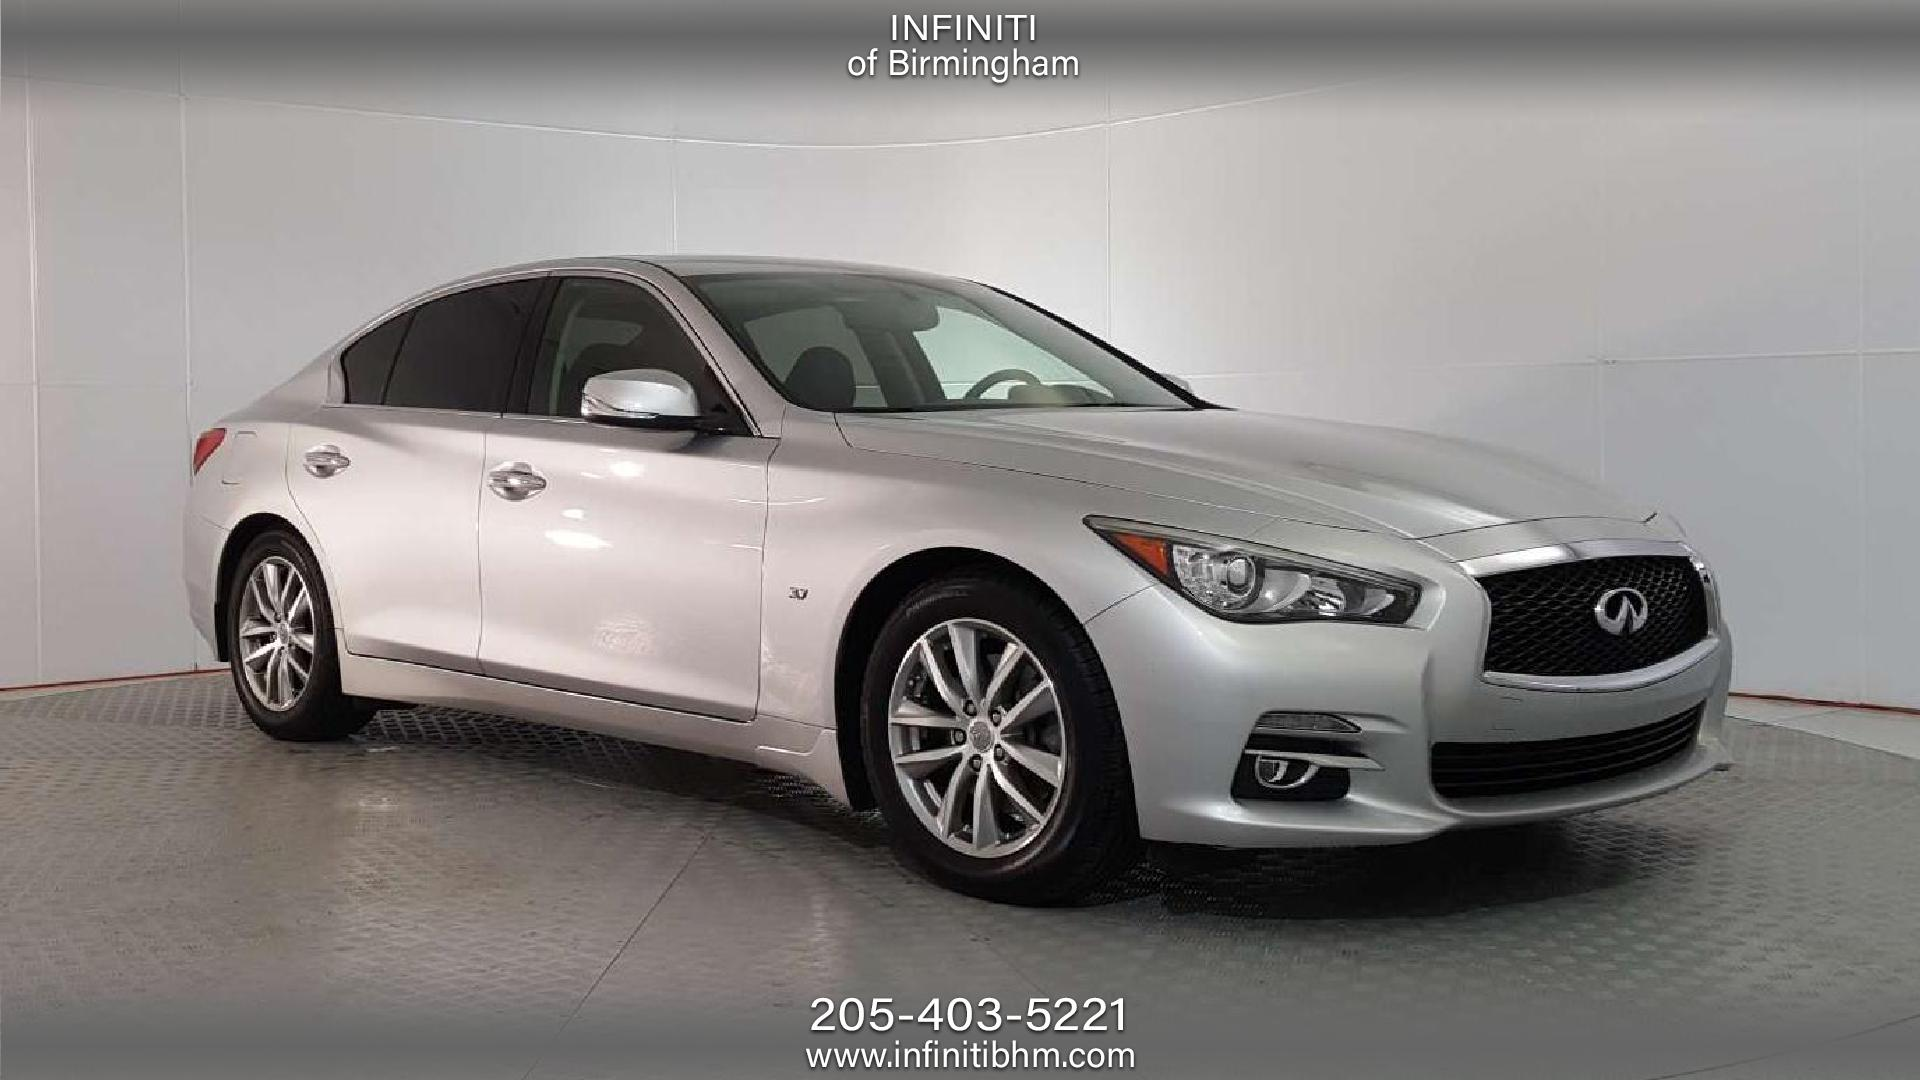 Hoover All 2014 INFINITI Q50 Vehicles for Sale